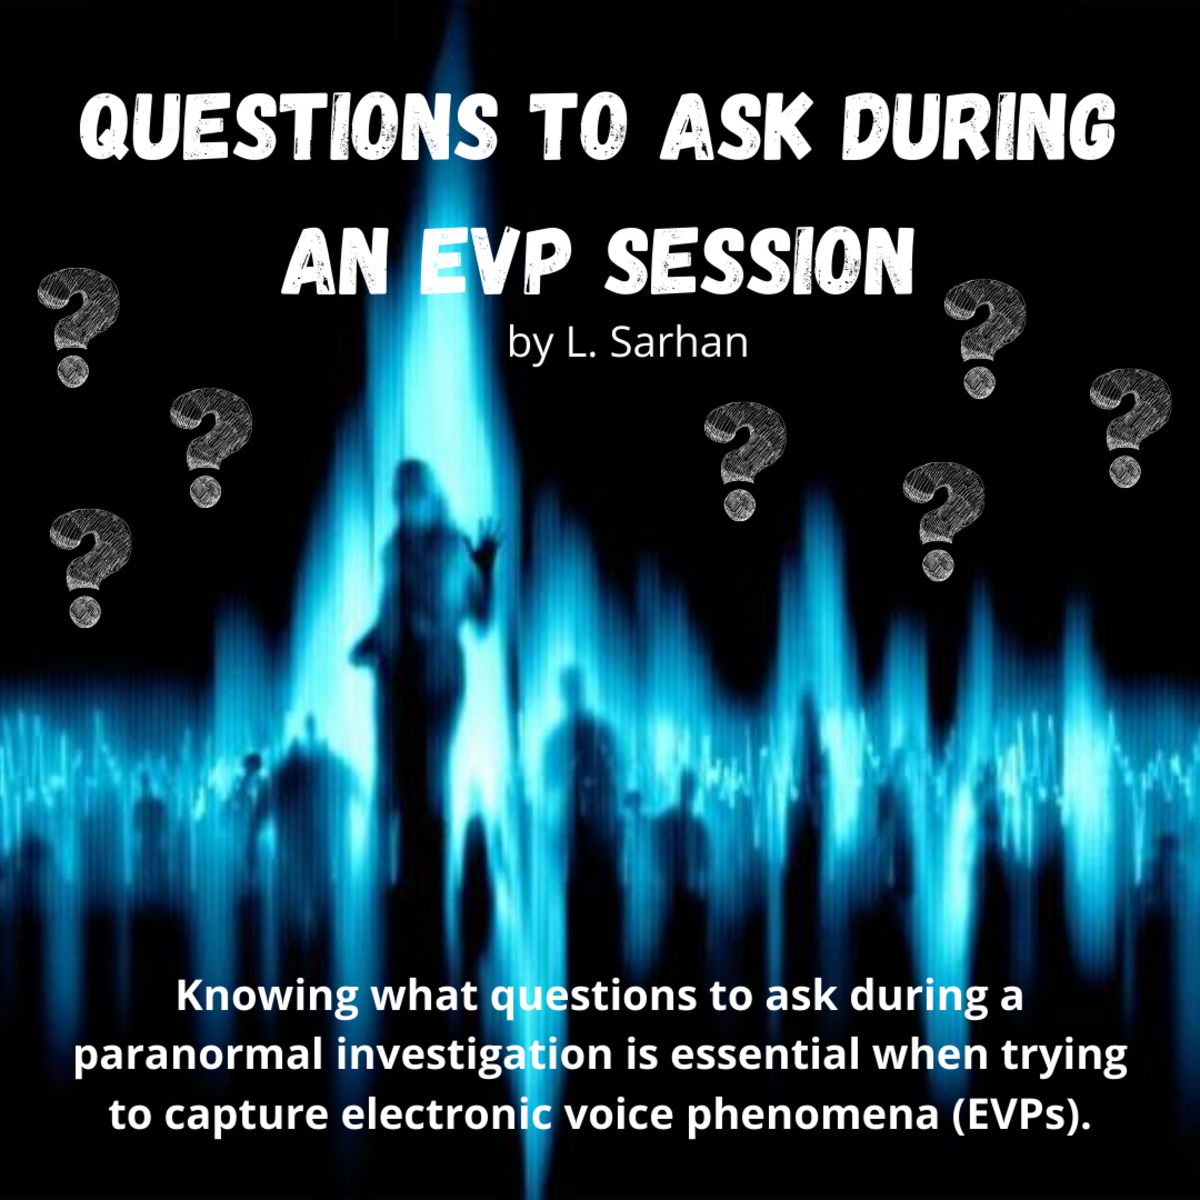 Knowing what questions to ask during a paranormal investigation is essential when trying to capture electronic voice phenomena (EVPs).